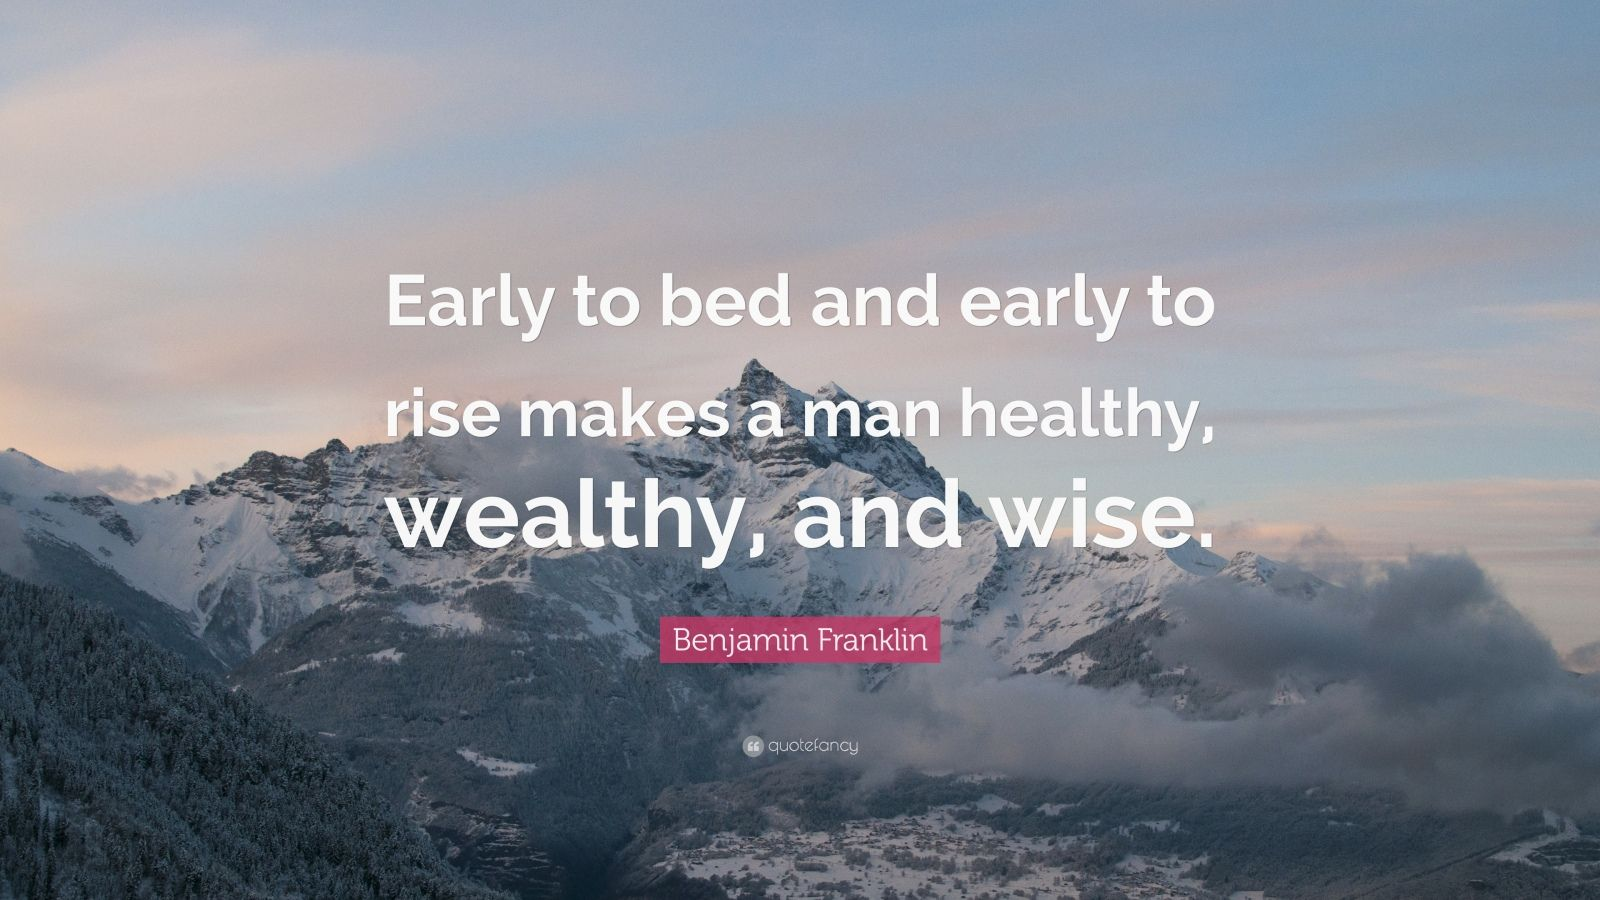 Wise Failure Quotes Wallpaper Benjamin Franklin Quote Early To Bed And Early To Rise